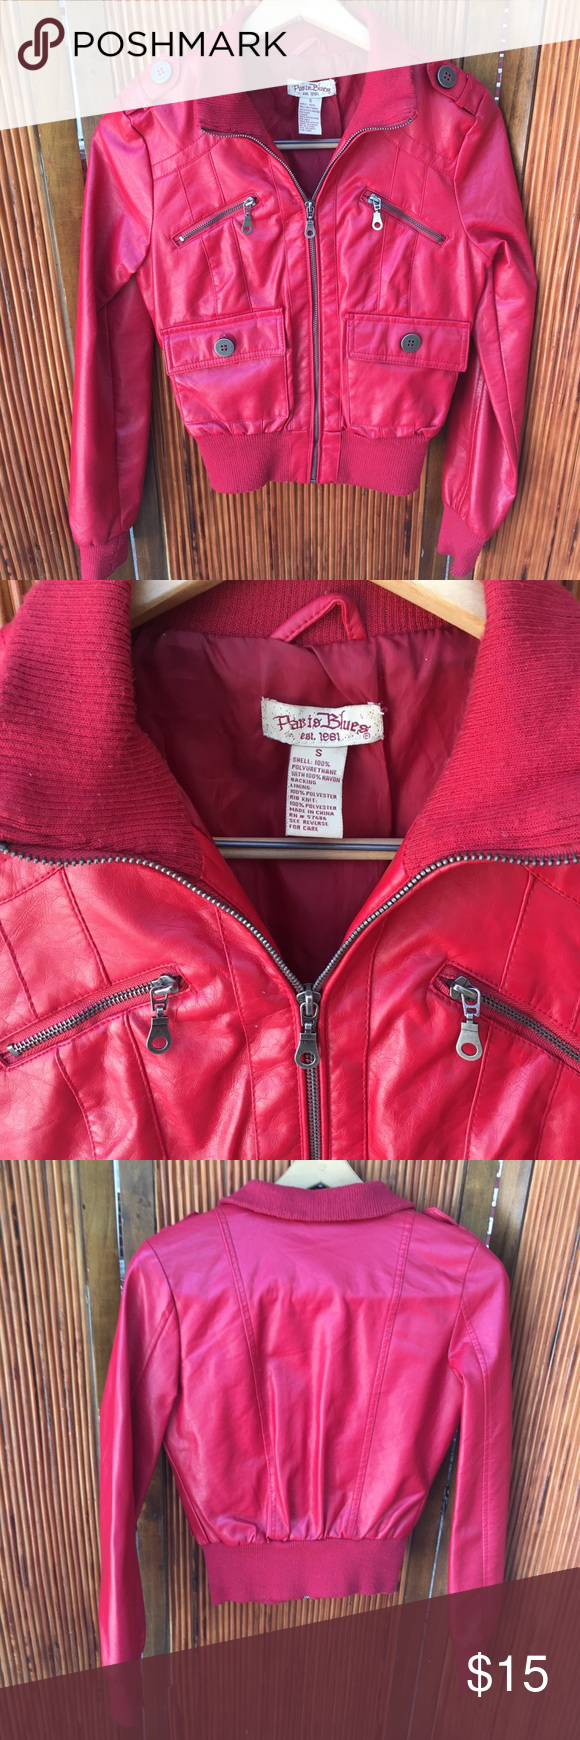 Paris Blues Red Jacket Used Once In Great Conditions No Damage No Stains Bundle More Save More Paris Blues Jackets C Red Jacket Paris Blues Jackets [ 1740 x 580 Pixel ]